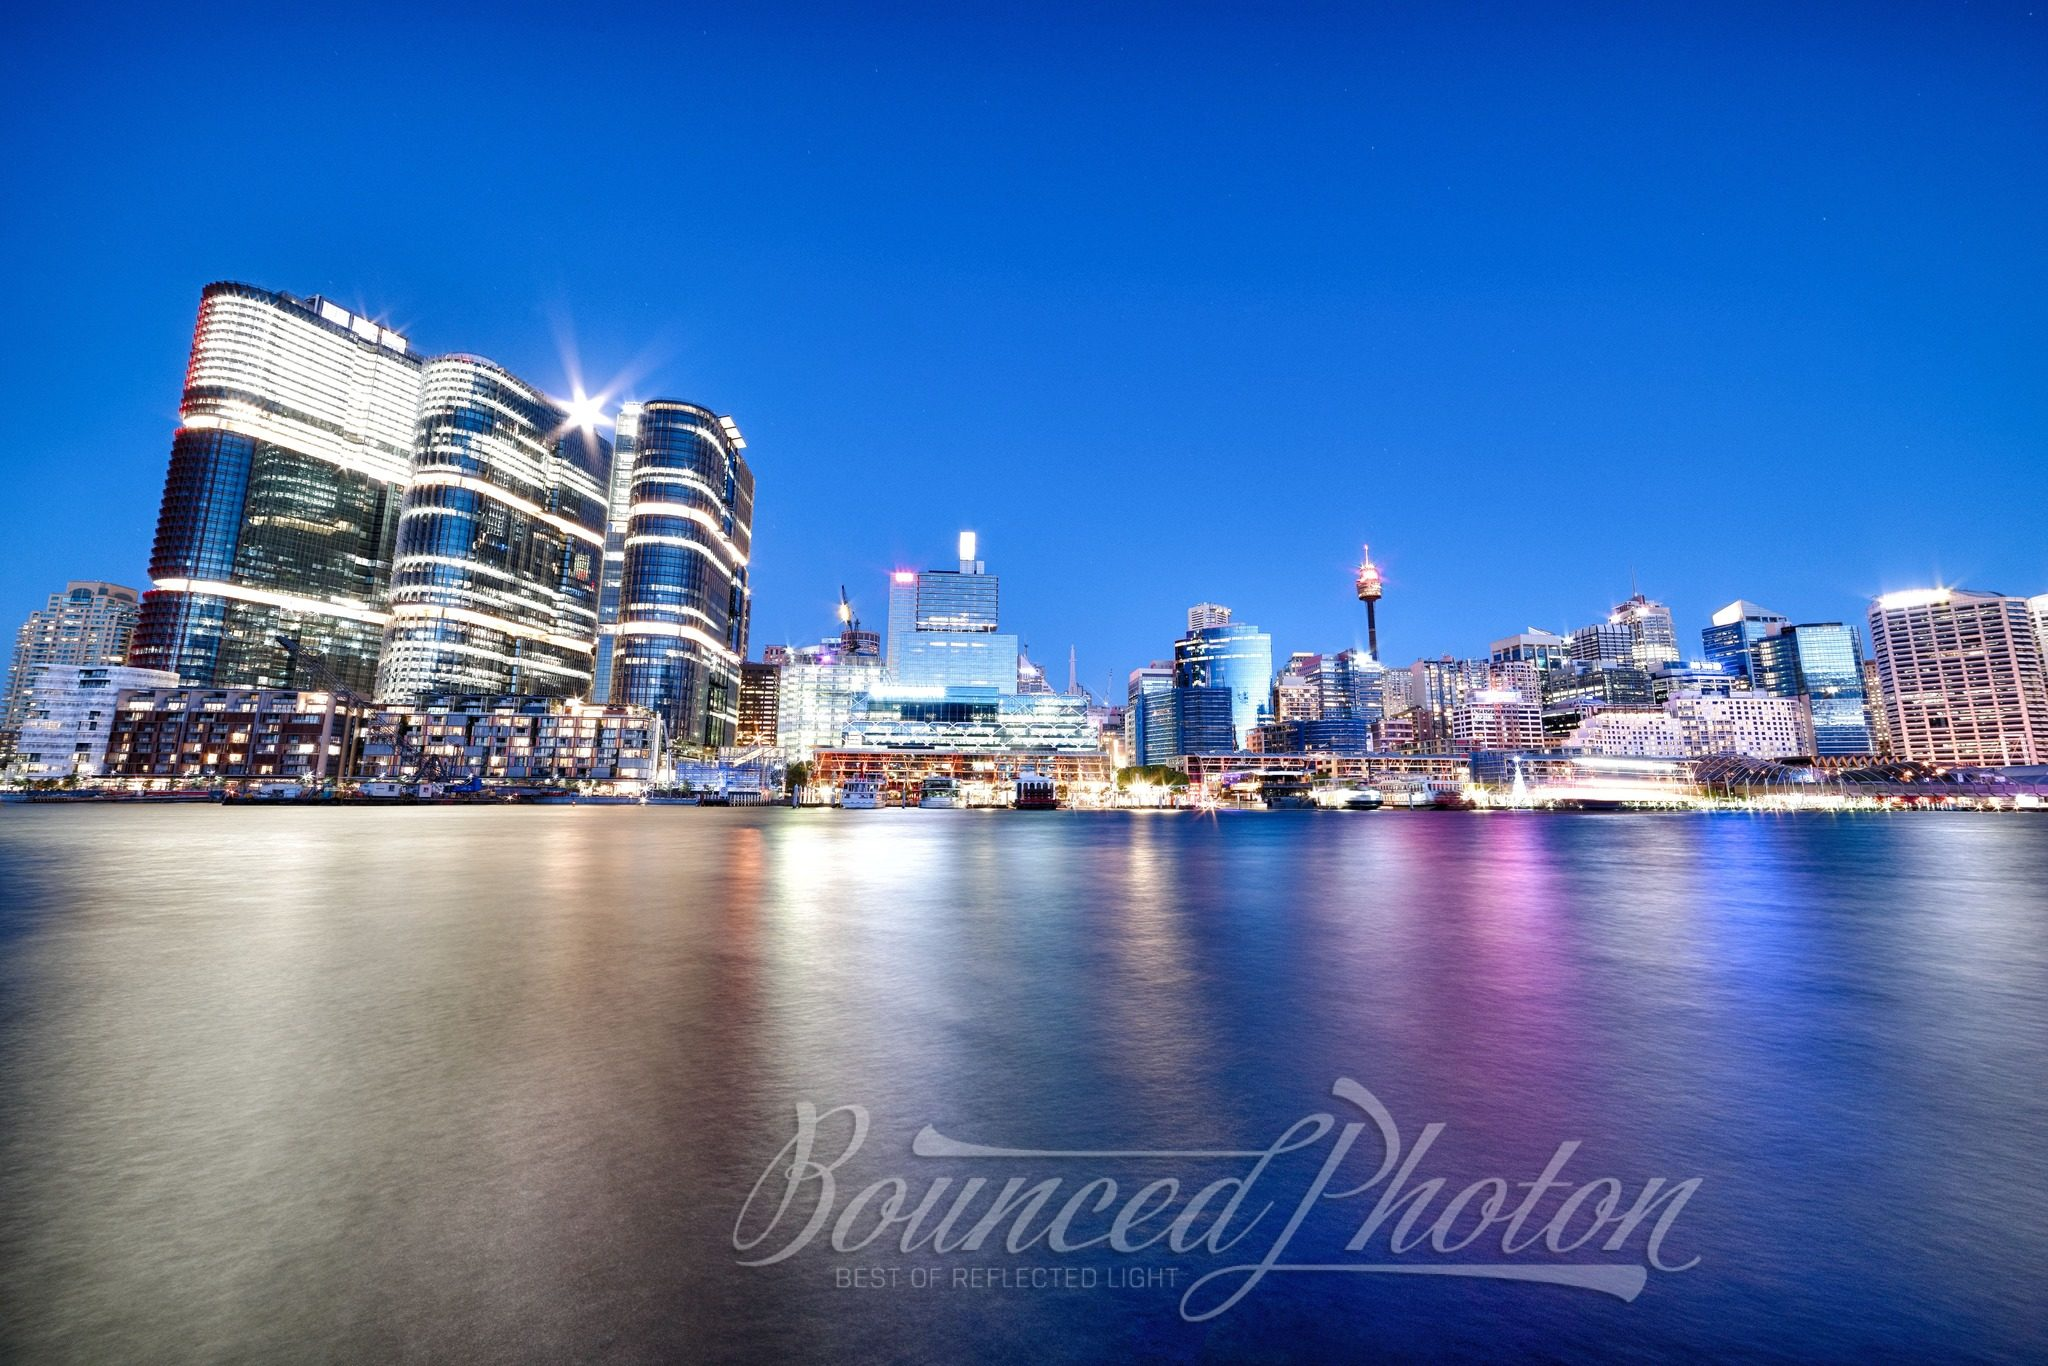 Moonrise Over Barangaroo, Sydney, Australia